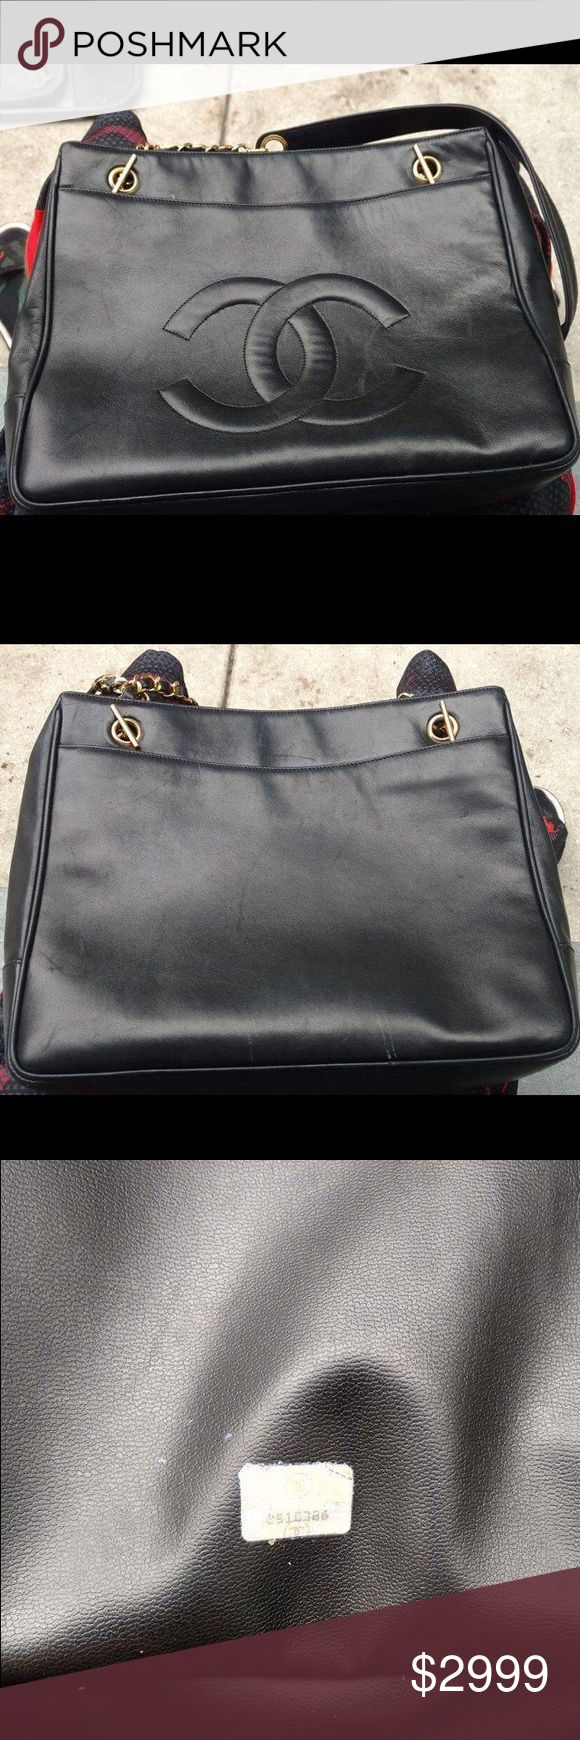 🎉RARE🎉Vintage Chanel blk lambskin shopping tote authentic CHANEL Vintage Lambskin Quilted Shopper Tote in Black.  This stylish vintage tote is crafted of luxuriously soft lambskin leather with a patch pocket on the face and rear. The bag features tall shoulder straps with gold chain link at the base and smooth leather shoulder pads. This is an excellent condition.  Minor scuffs on the bottom that can be conditioned.   Zipper pocket inside and on the opposite side just an open pocket…